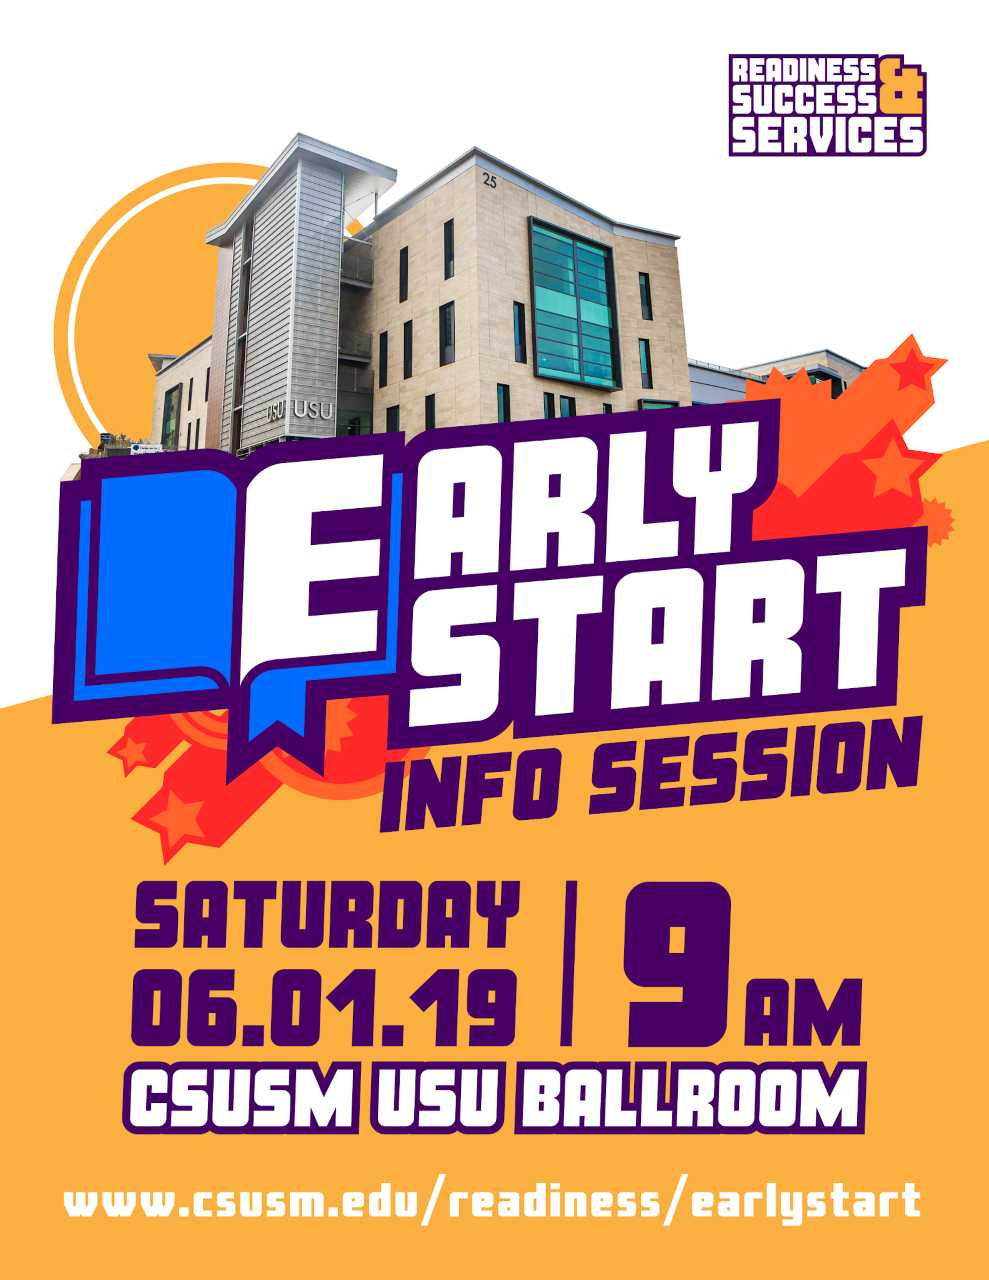 2019 Early Start Information Session